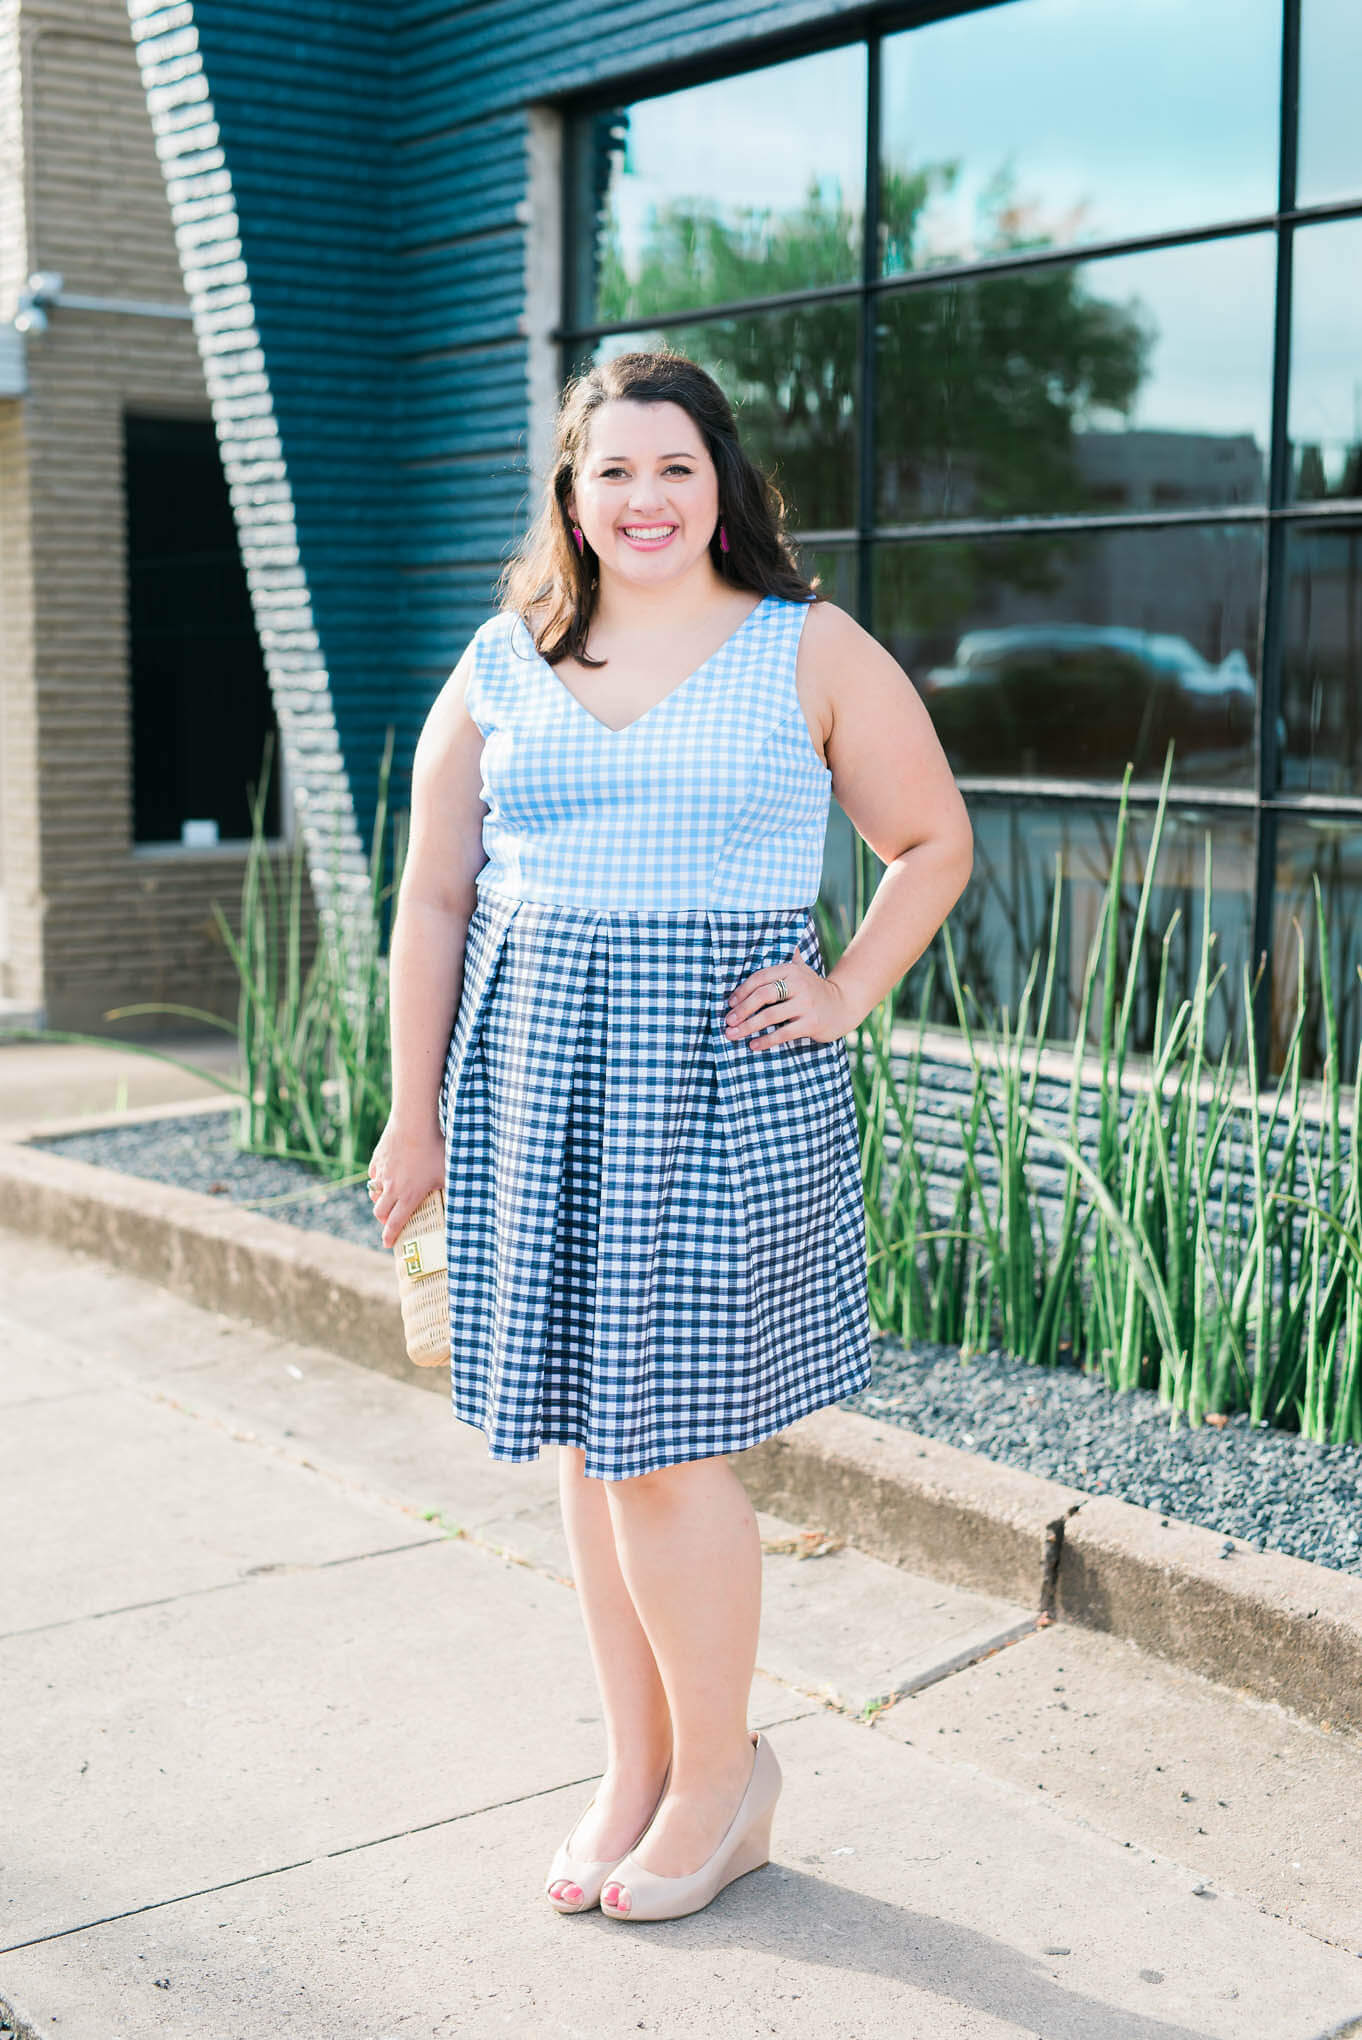 Wedding season is starting to wind down, but I have another wedding attire post to share with you for those cooler weather fall weddings. - Something Gold, Something Blue a curvy style blog by Emily Bastedo